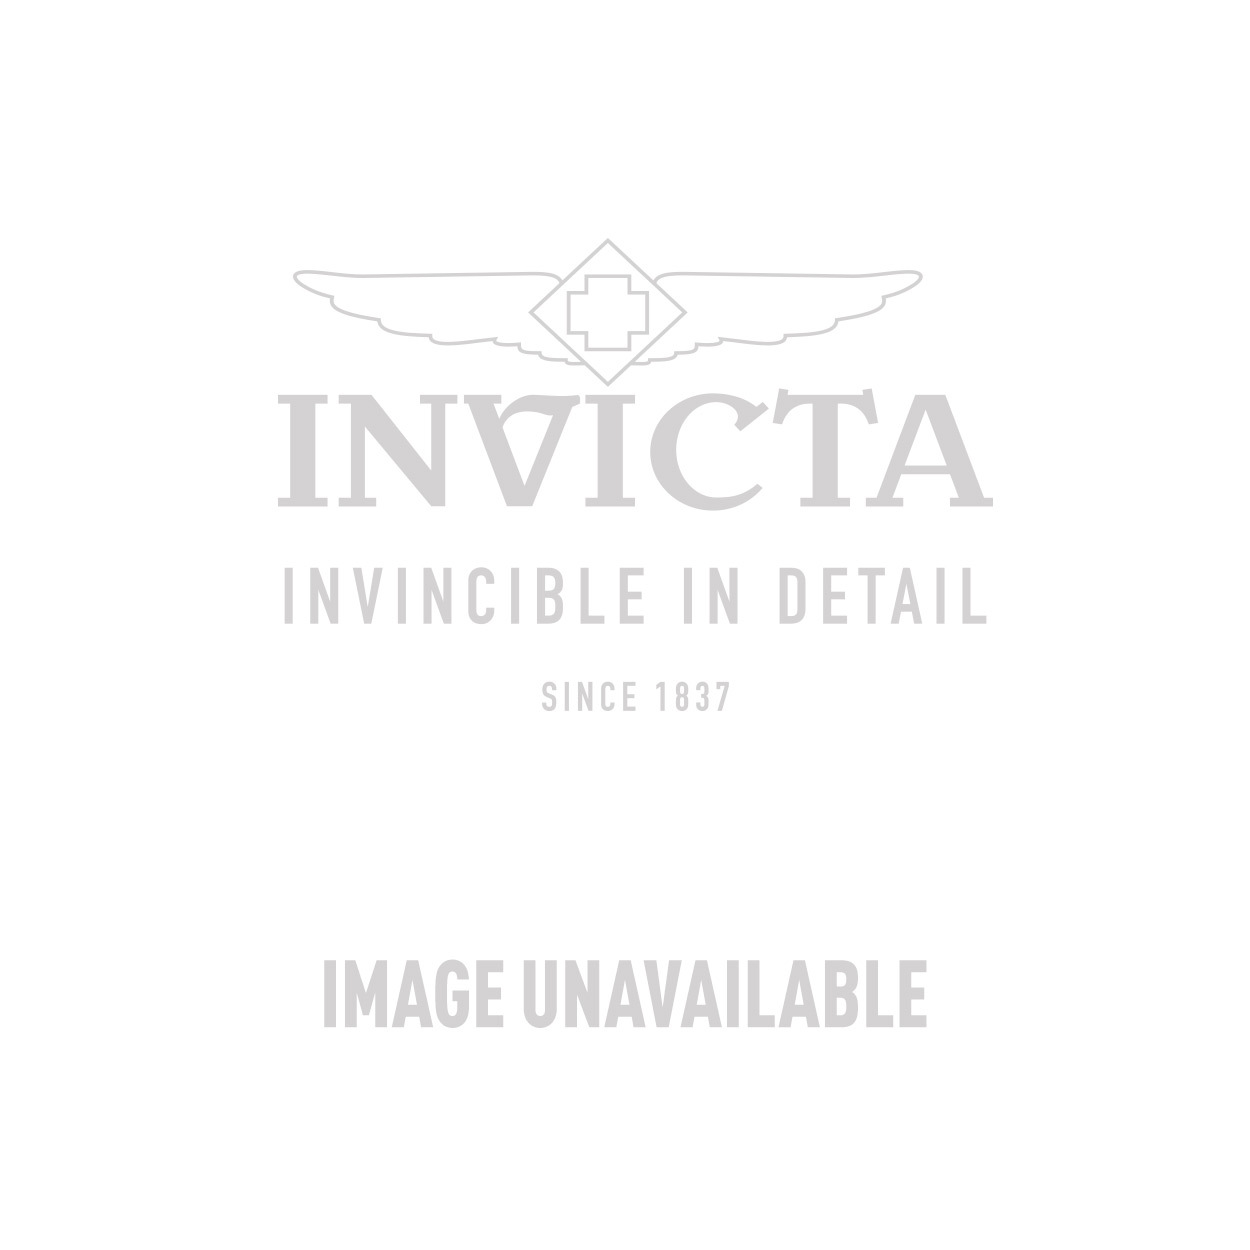 Invicta Subaqua Swiss Made Quartz Watch - Stainless Steel case Stainless Steel band - Model 15992